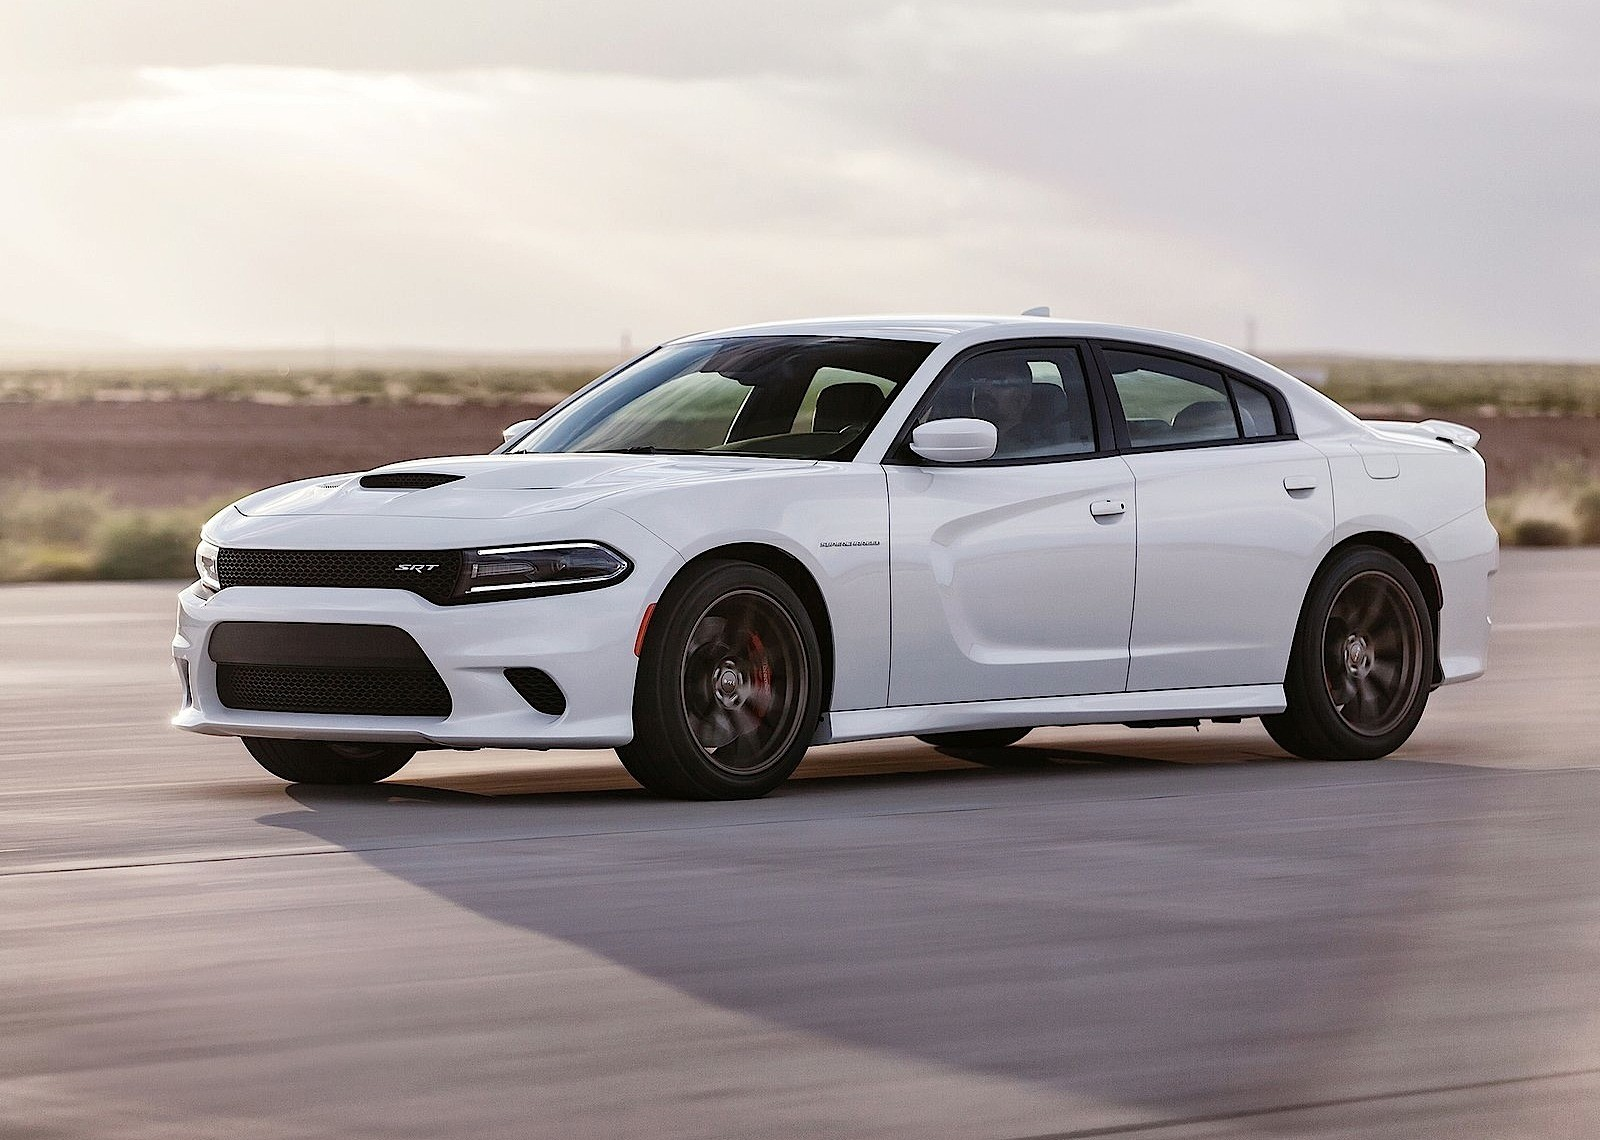 For 2015, the Dodge Charger seventh generation model got the new SRT